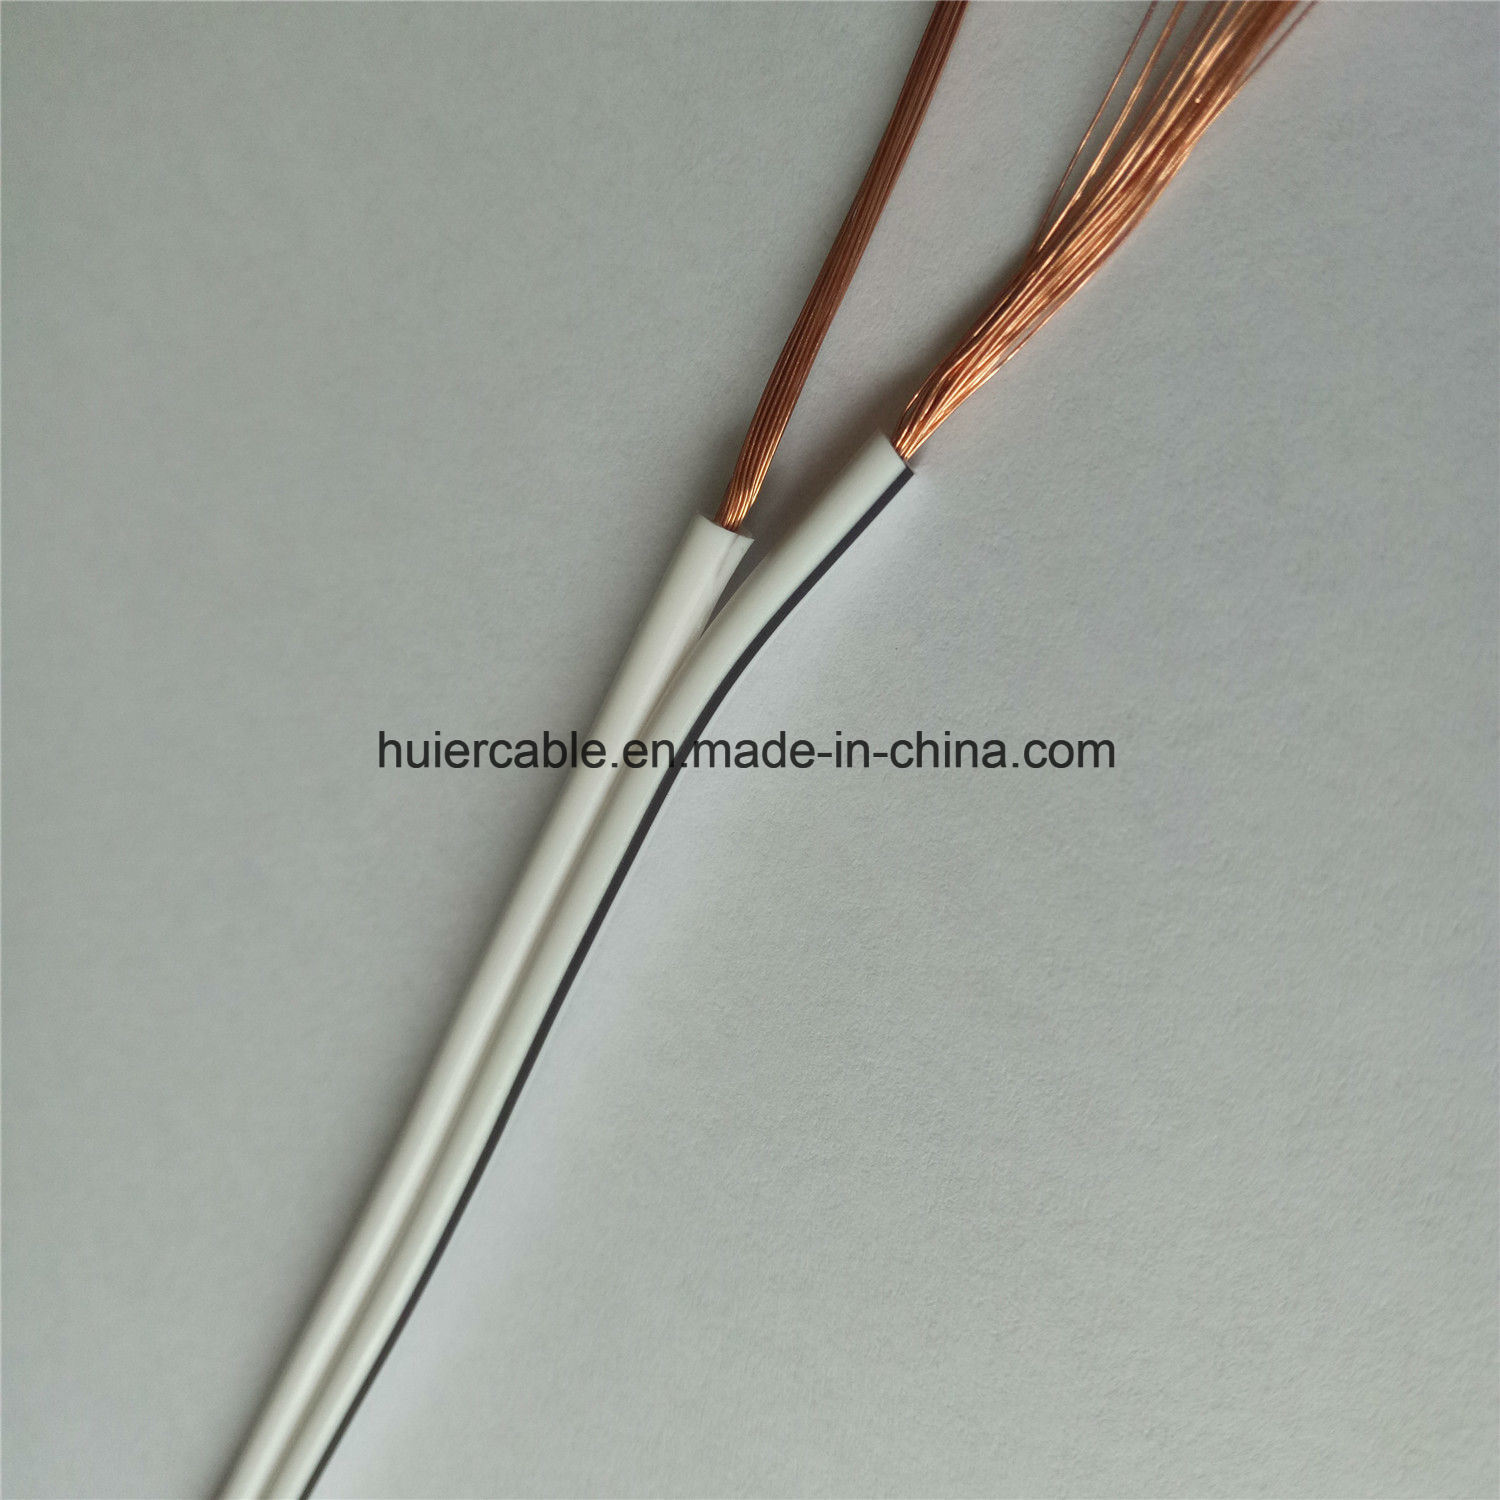 China 12AWG Parallel Speaker Wires with Colorful Stripe (2 Cores ...